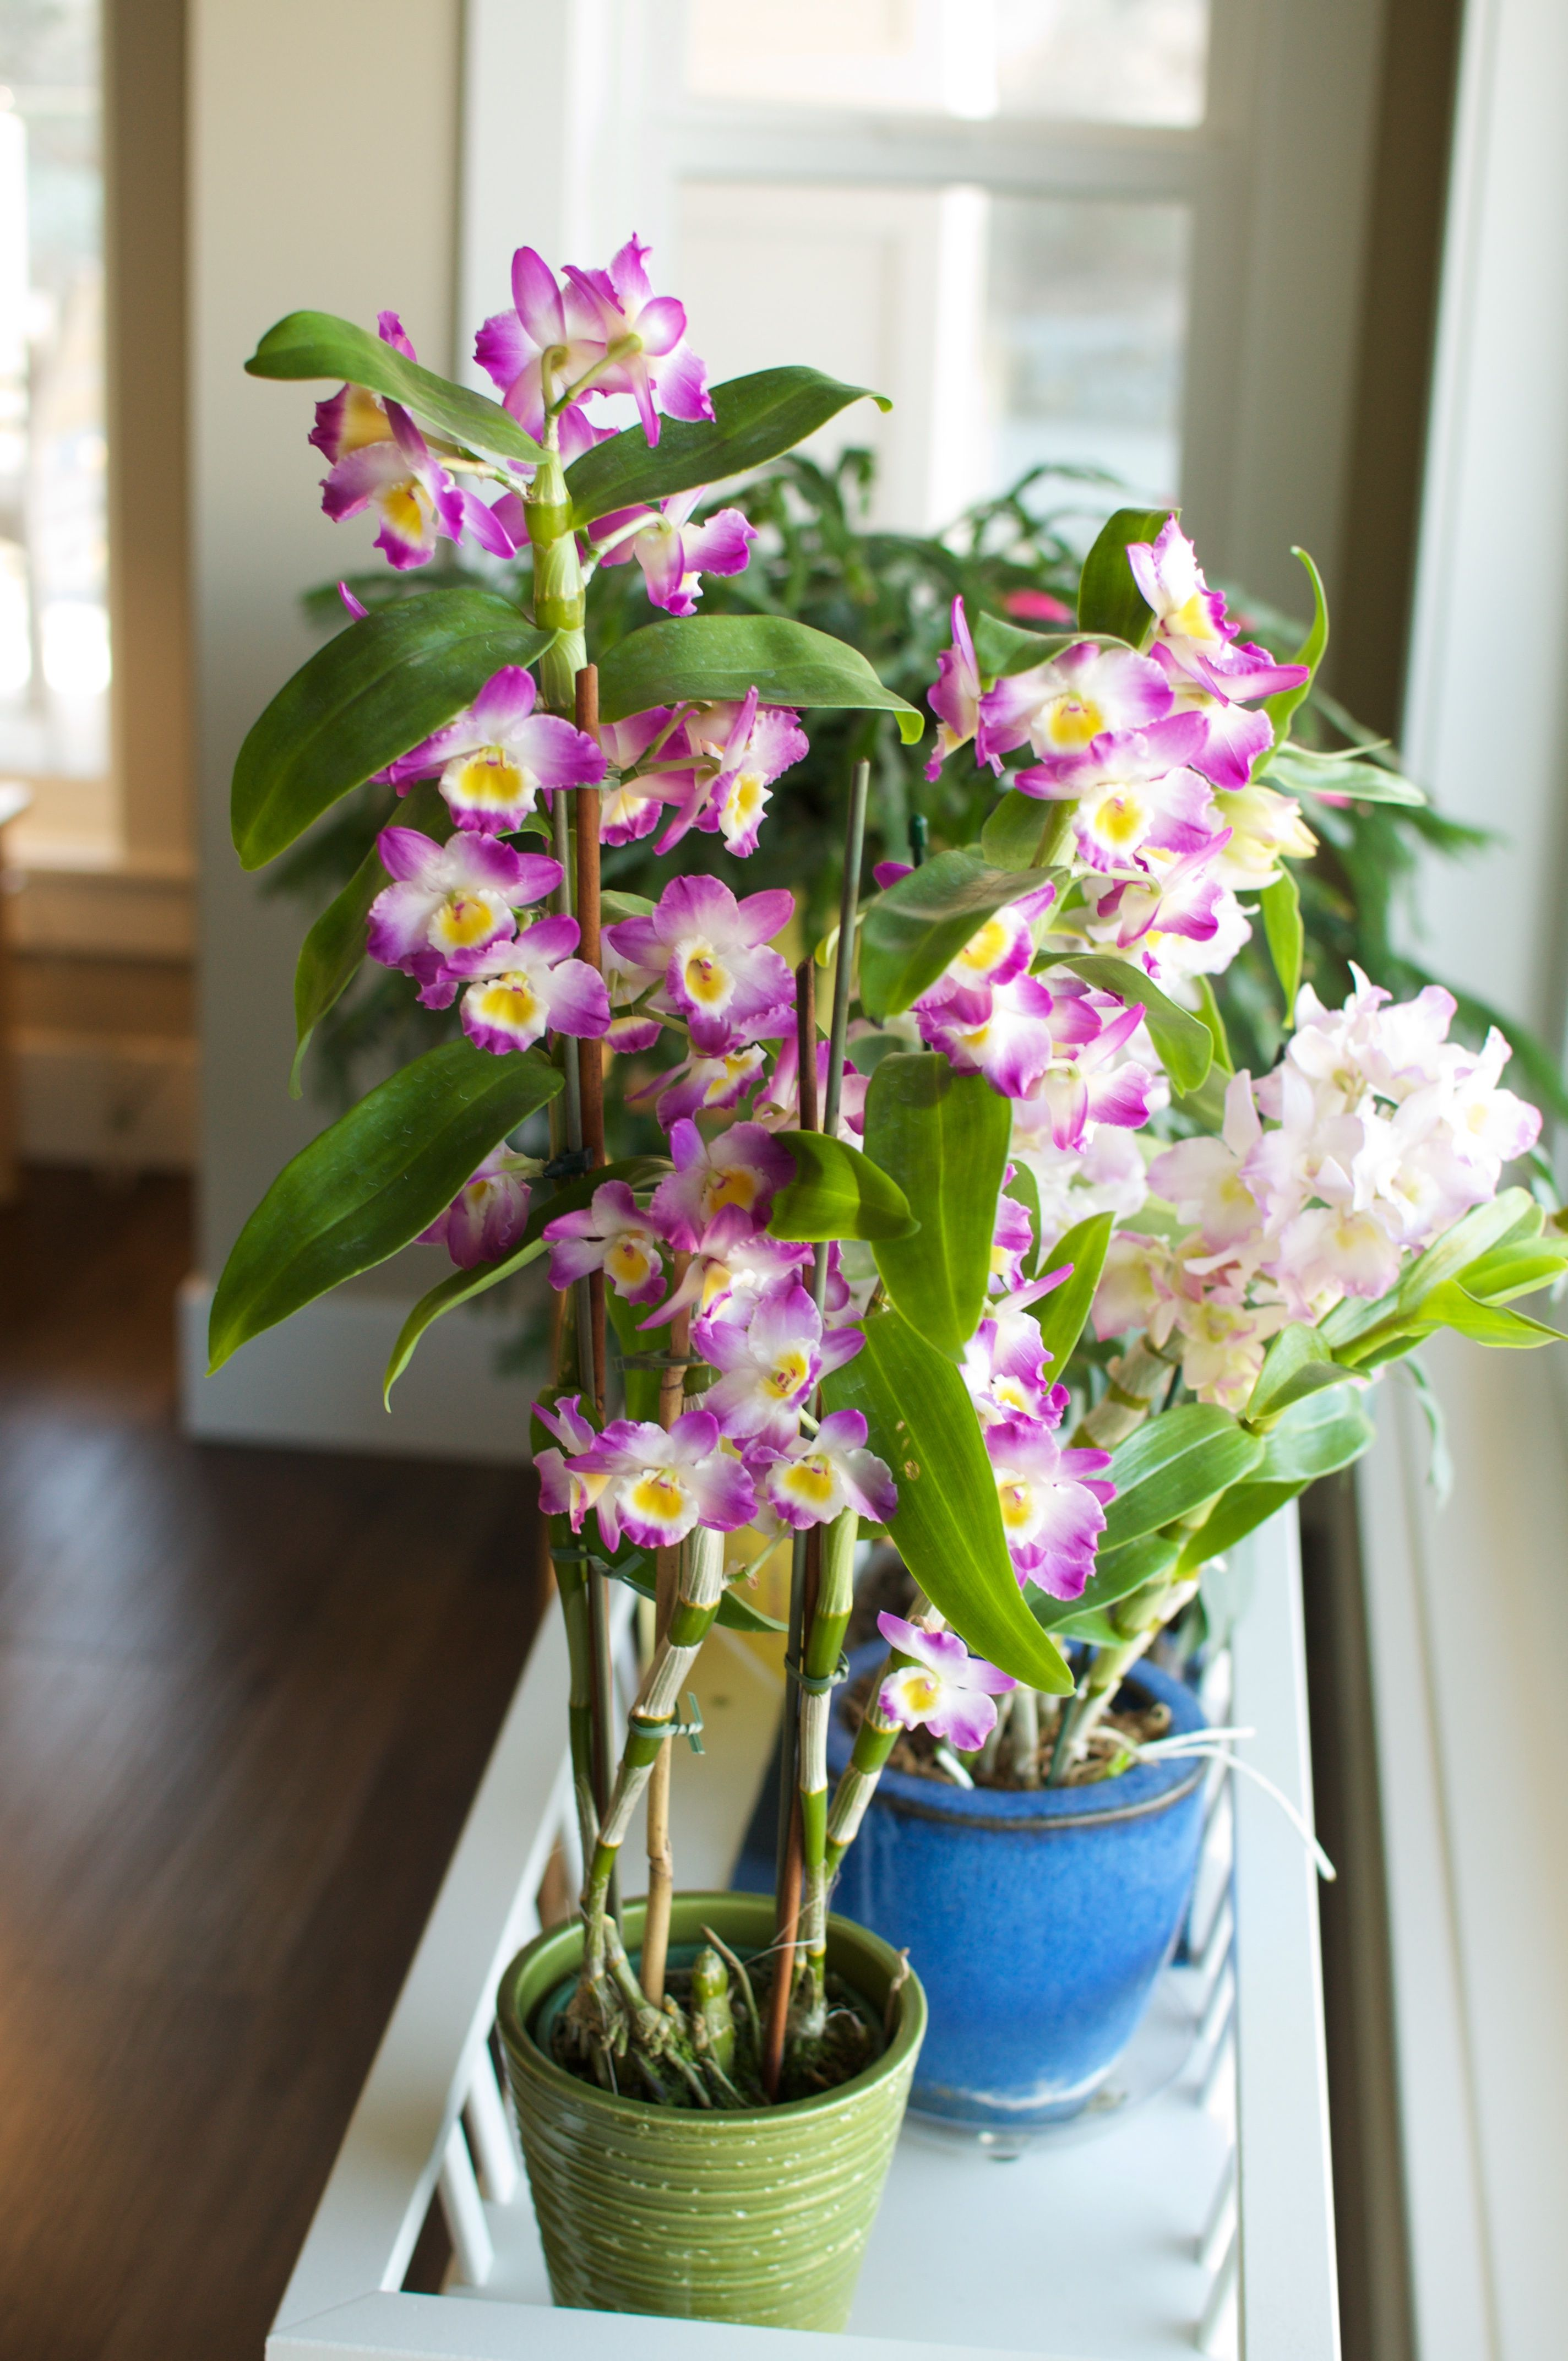 Dendrobium Nobile 2 Of My Plants In Bloom Both Have Great Lilac Scent Easy To Bloom If Fertilizing Is Stopped Dendrobium Nobile Plants Types Of Orchids